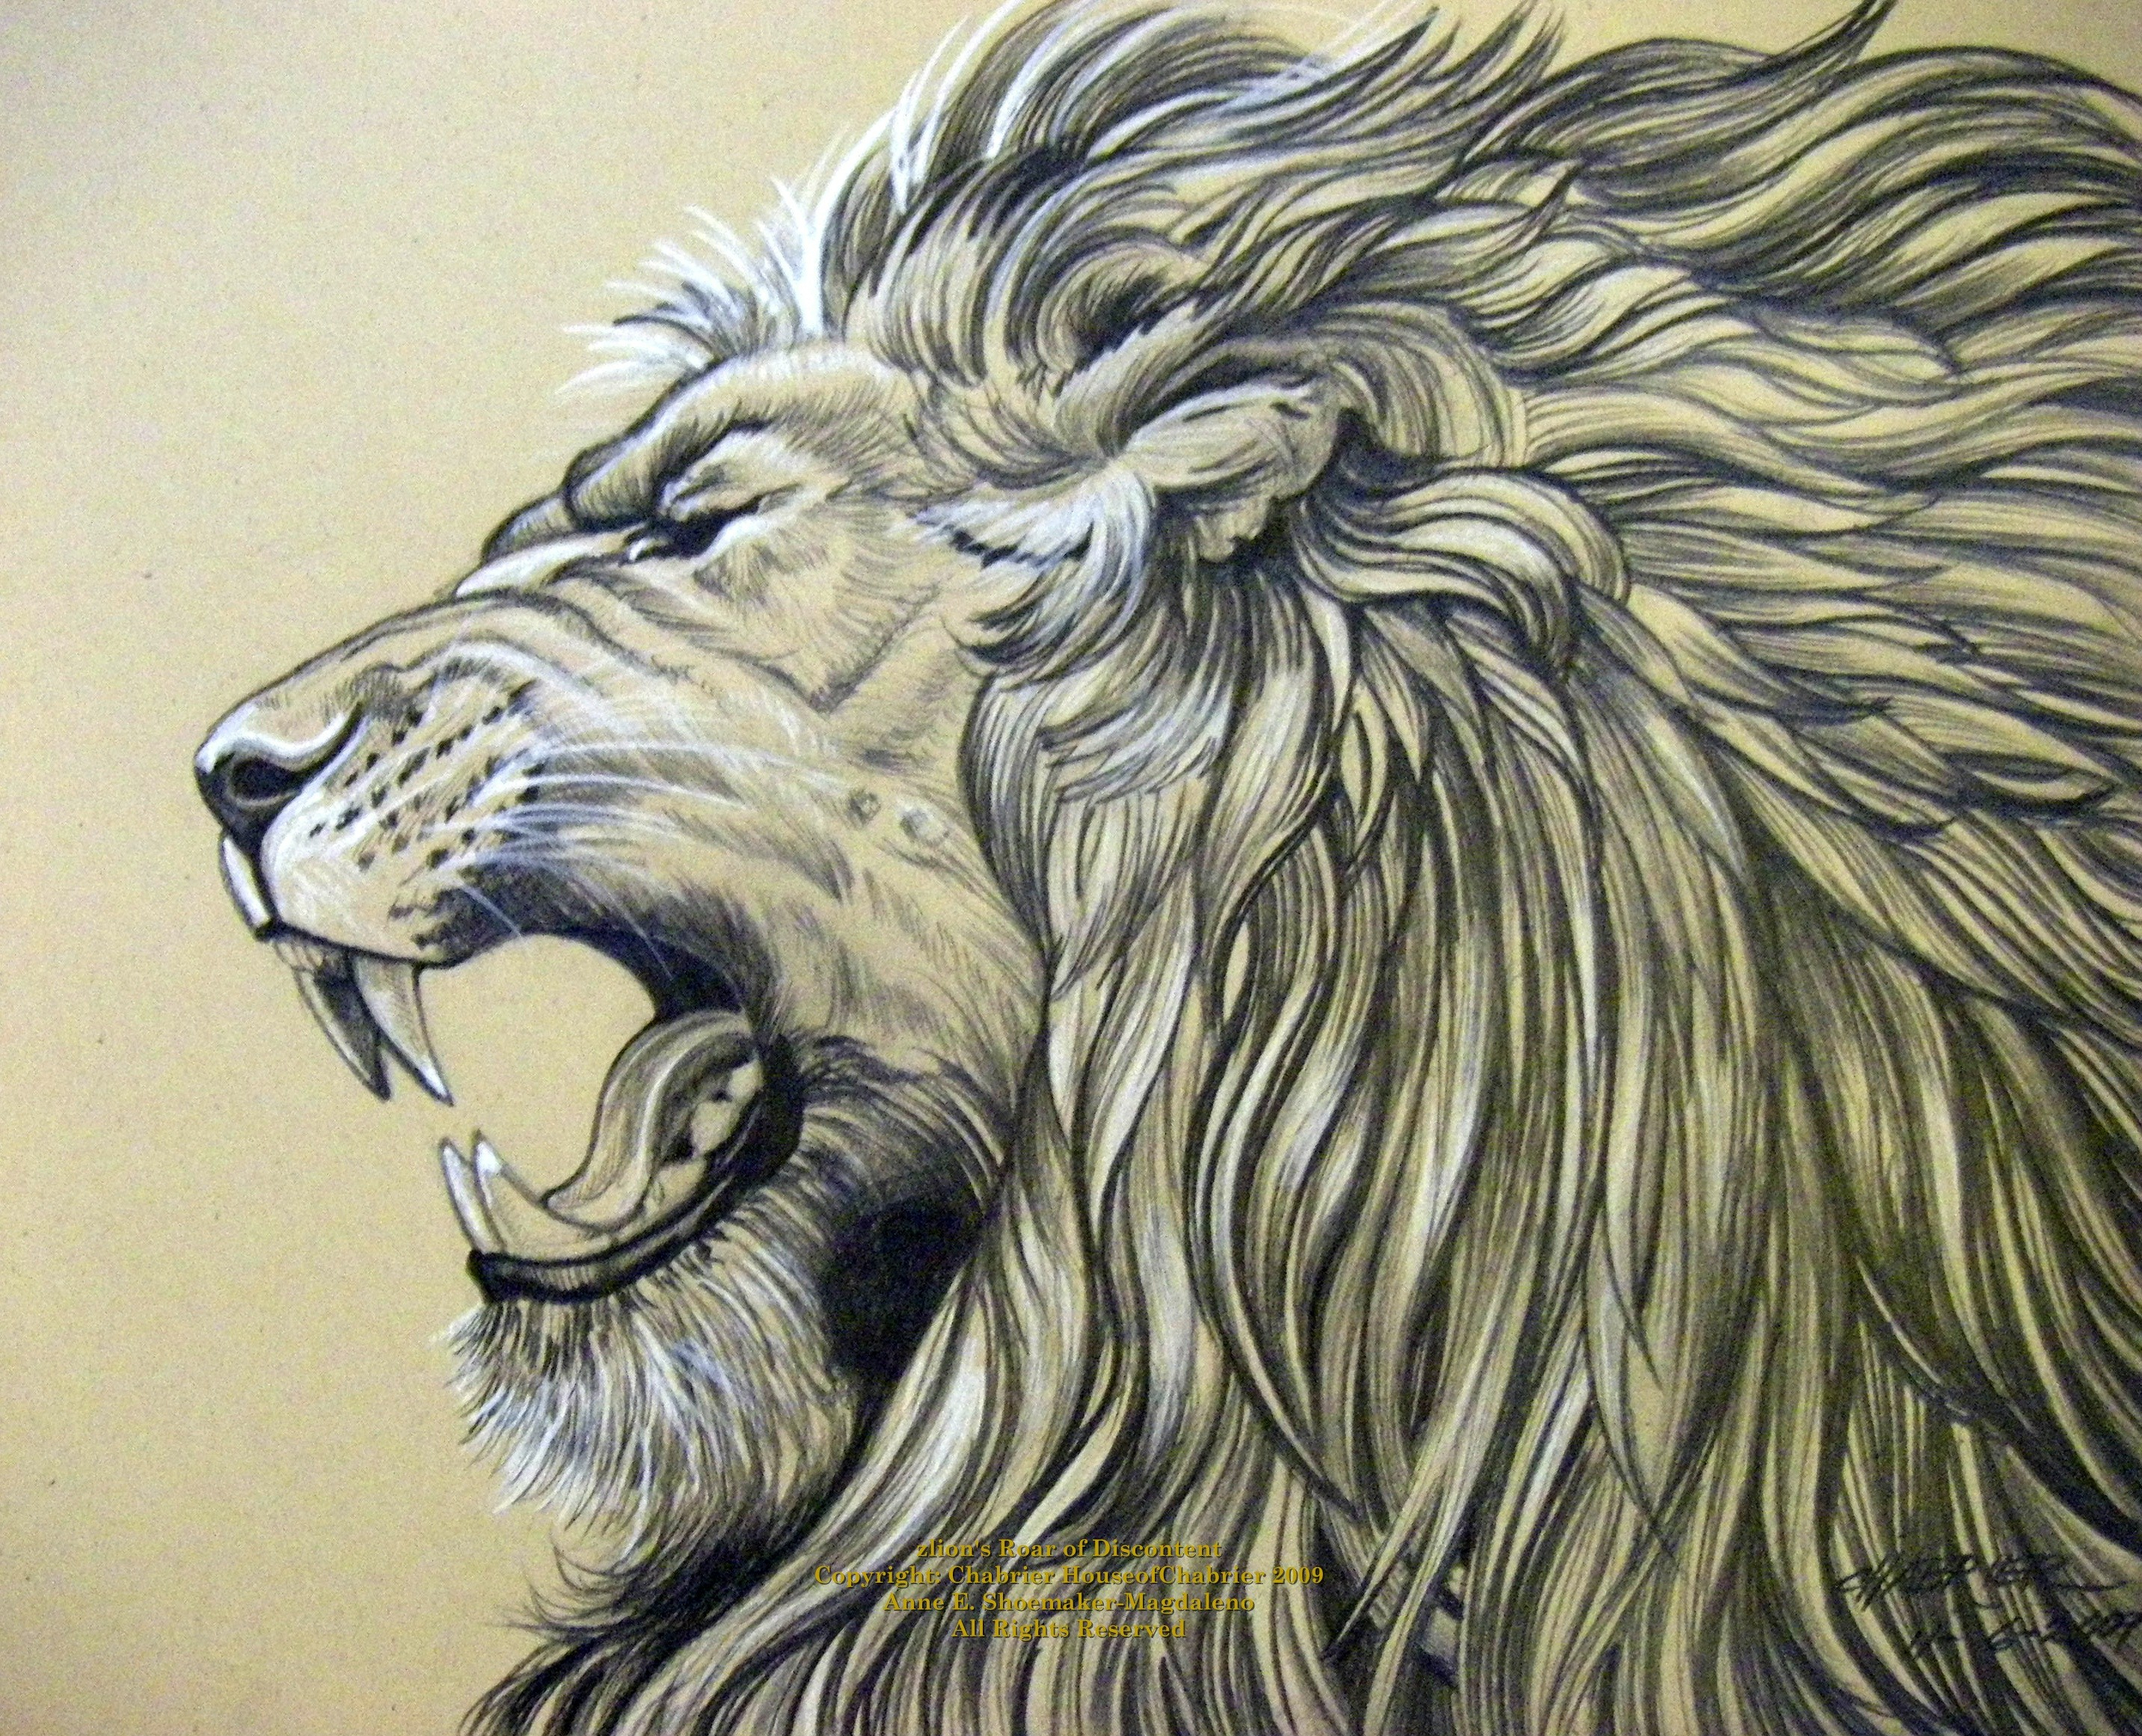 2864x2321 Pencil Sketches Of Lion Lion Pencil Sketch Lion Face Pencil Sketch